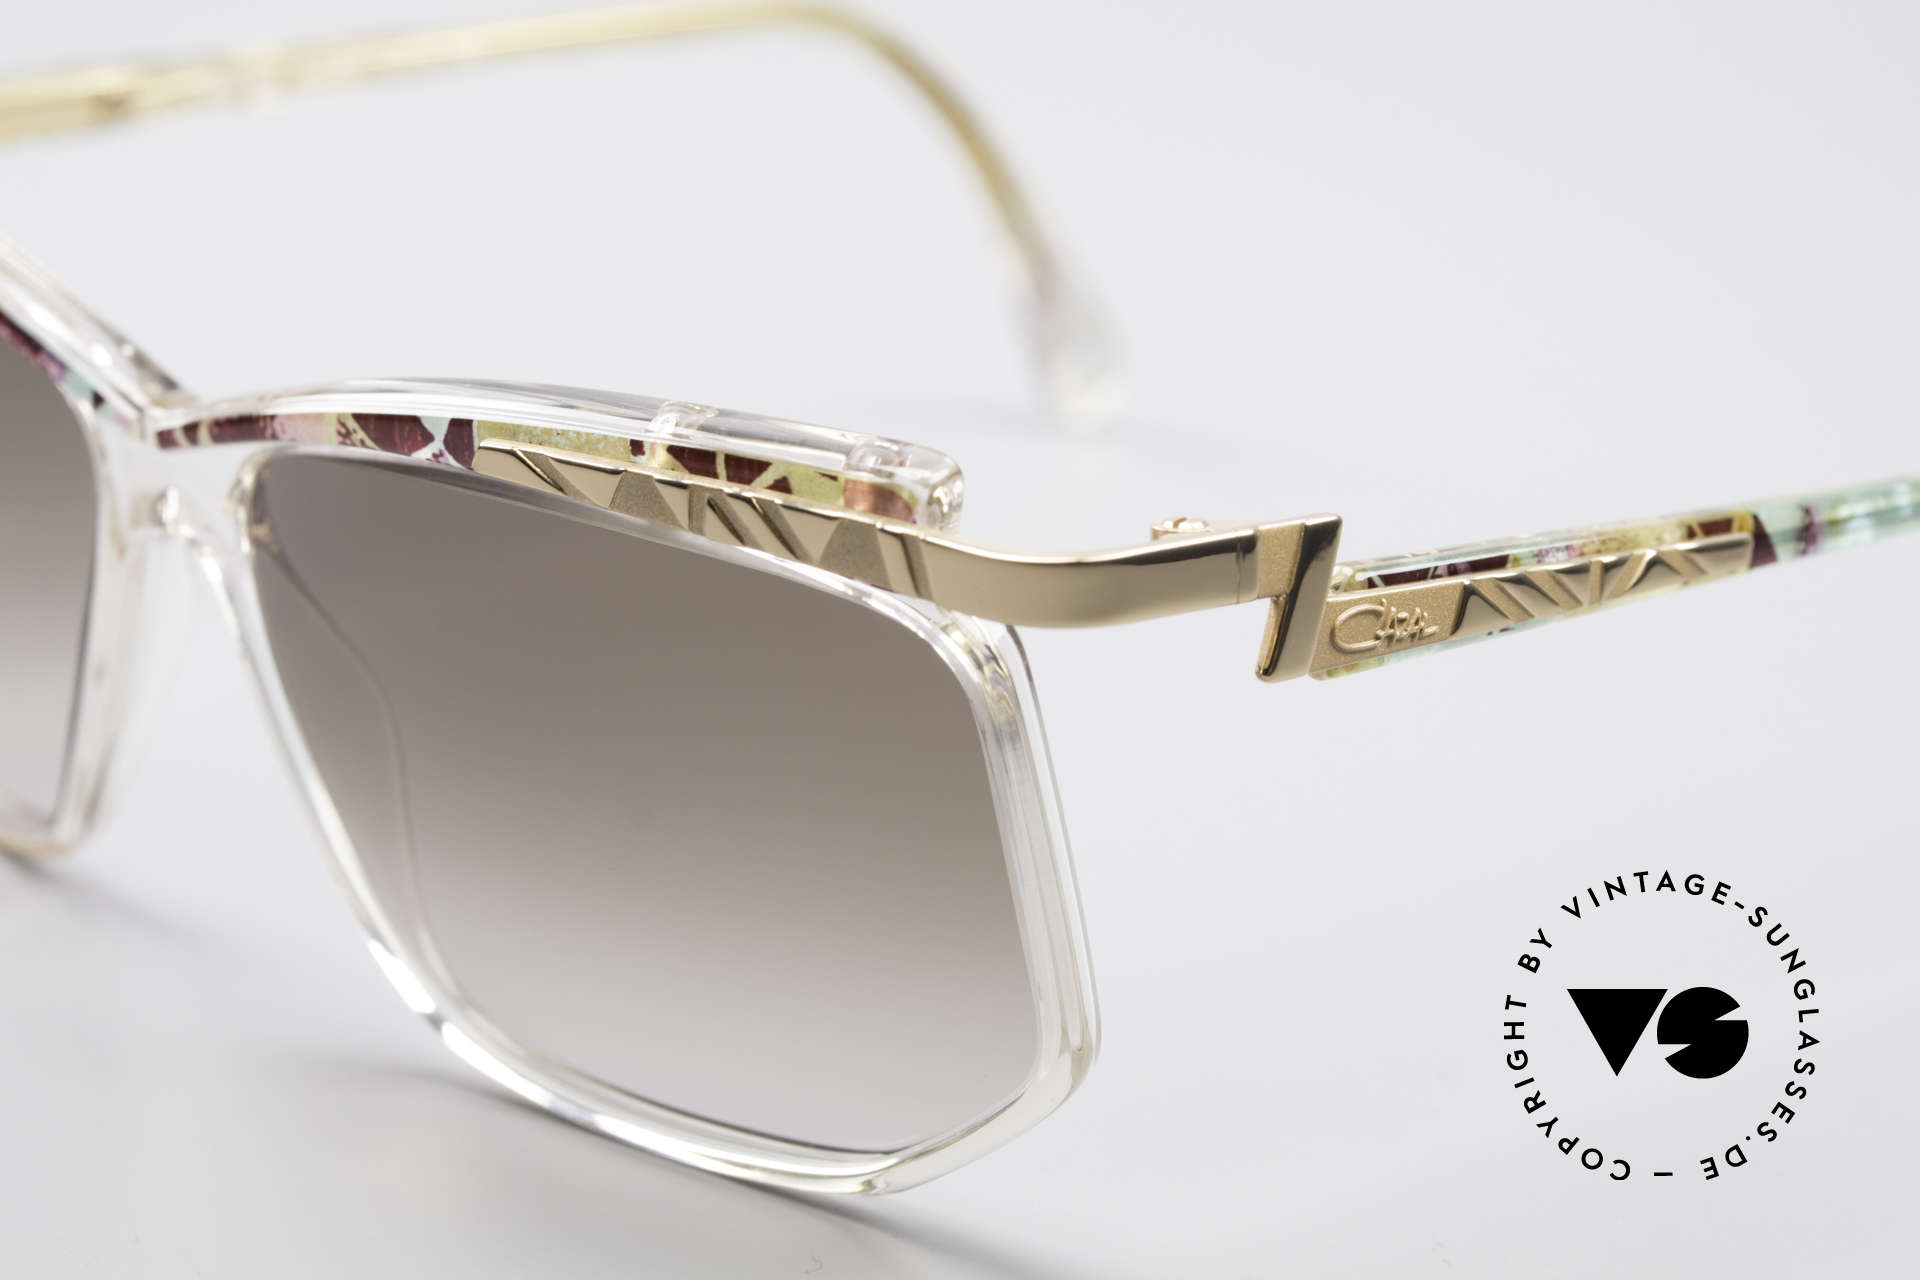 Cazal 366 Crystal Vintage 90's Frame, really and truly: old school frame 'made in Germany', Made for Men and Women